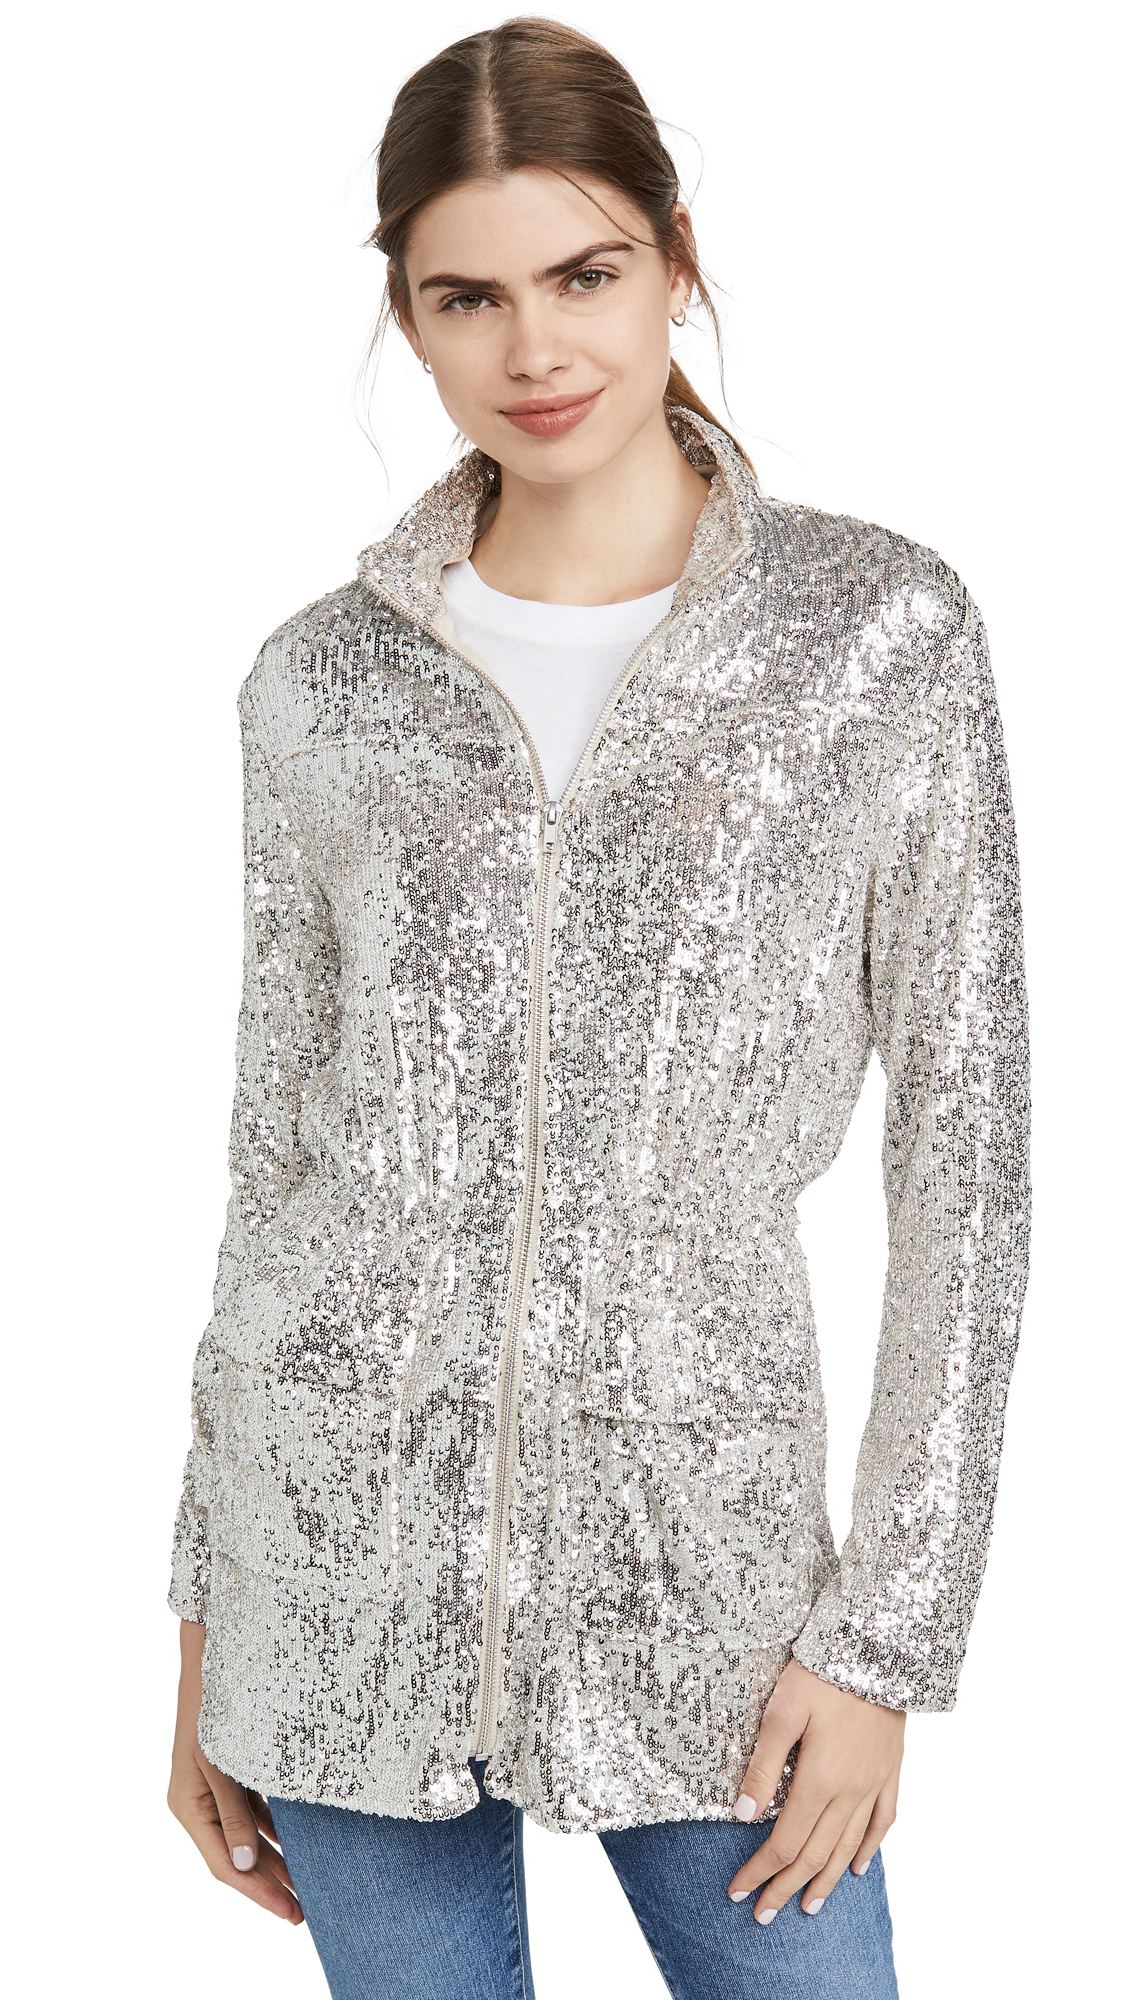 Buy BB Dakota Sequin Premiere Jacket online beautiful BB Dakota Jackets, Coats, Coats